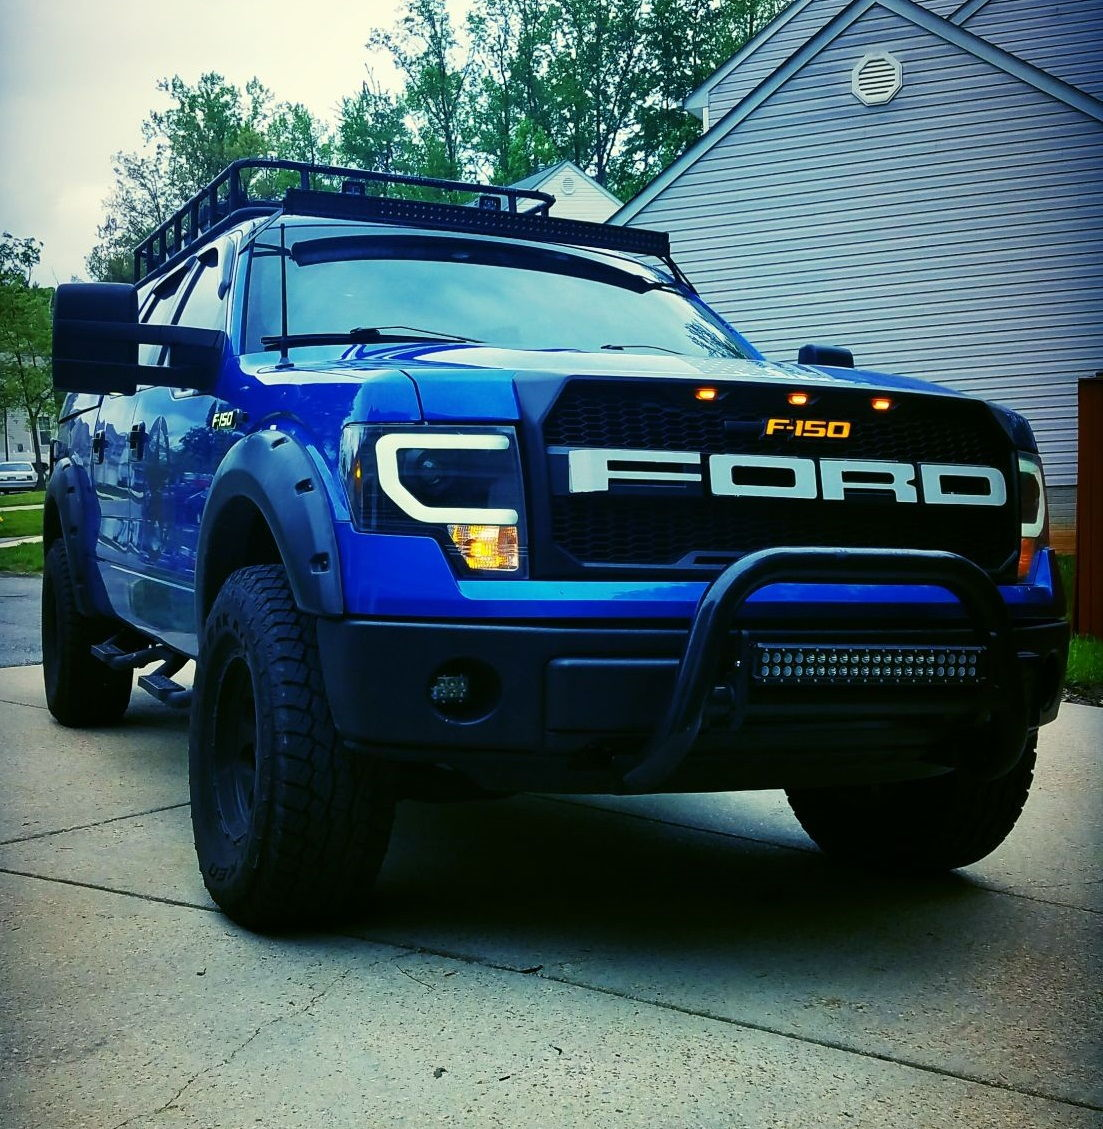 2018 f150 forums 2019 2020 news car update rh pishonlab com